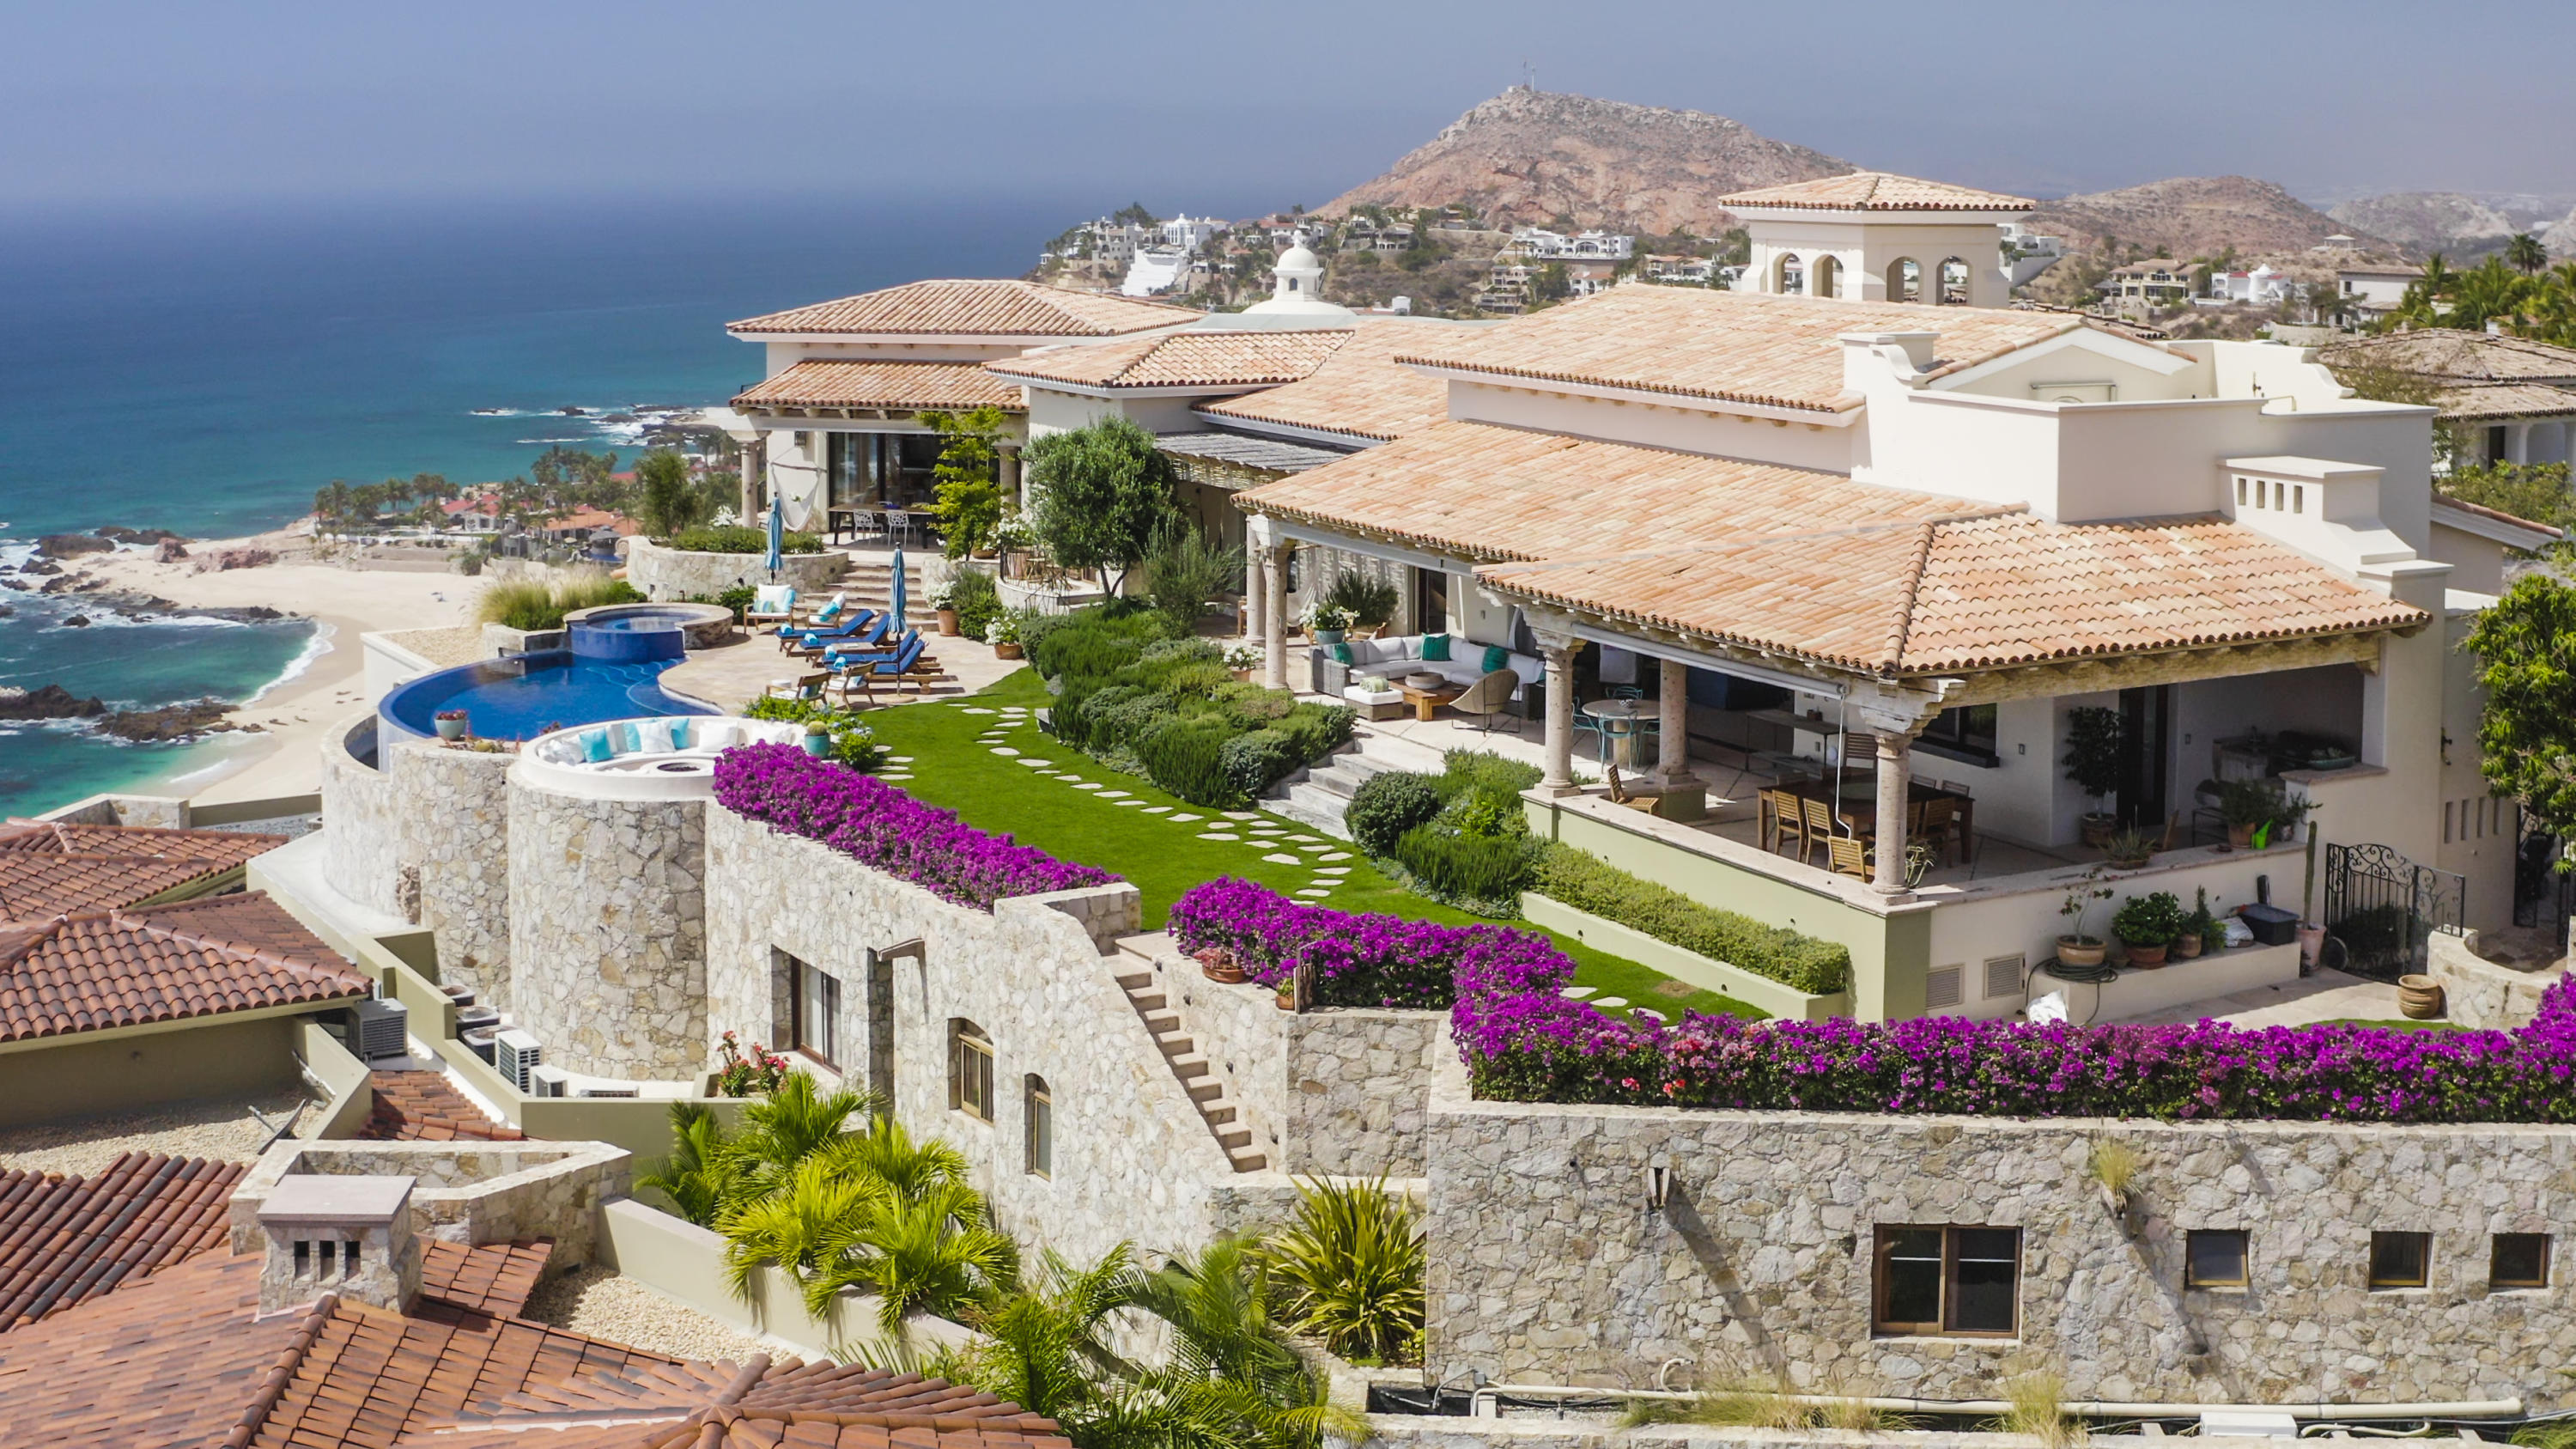 A hilltop sanctuary sitting at an altitude of 300 ft above the ocean, giving a unique and relaxed wide open setting that will keep your mind at ease. Exceeding 200 degrees of extensive panoramic views, overlooking above and beyond the Sea of Cortez, golden beaches and city lights of San Jose del Cabo. At the heart of the luxury, gated community of La Montana in Villas del Mar. This laid-back beach house has the perfect balance between traditional Mexican hacienda style and contemporary architecture. Villa Corazon was thoughtfully designed to block the least amount of views, uniting the inside to the outside through pocket doors and high ceilings to make the most out of year round great weather, giving priority to the flow of cool air and the enjoyment of views from inside. Main House: 5 bedrooms with en suite bathrooms TV room / Library Underground wine cave and bar  Maid quarters with kitchenette  Two fully stocked kitchens  Multiple living spaces Infinity pool with large deck and garden 2 car indoor garage and 1 carport    Casita: 2 Bedrooms with en suite bathrooms Fully stocked kitchen  Infinity pool 1 indoor car garage  Perched atop an exclusive cliff side mountain within Villas del Mar community, Villa Corazon puts you at the center of San Jose's exceptional local activities as well as a variety of distinctive amenities right outside your door:  96 Private Beach Club Espiritu Fitness Club and Town center One & Only hotel Palmilla's Jack Nicklaus Golf Course Palmilla Shops and restaurants  Villas del Mar Community Gym Private Beach Access Public Beach Access